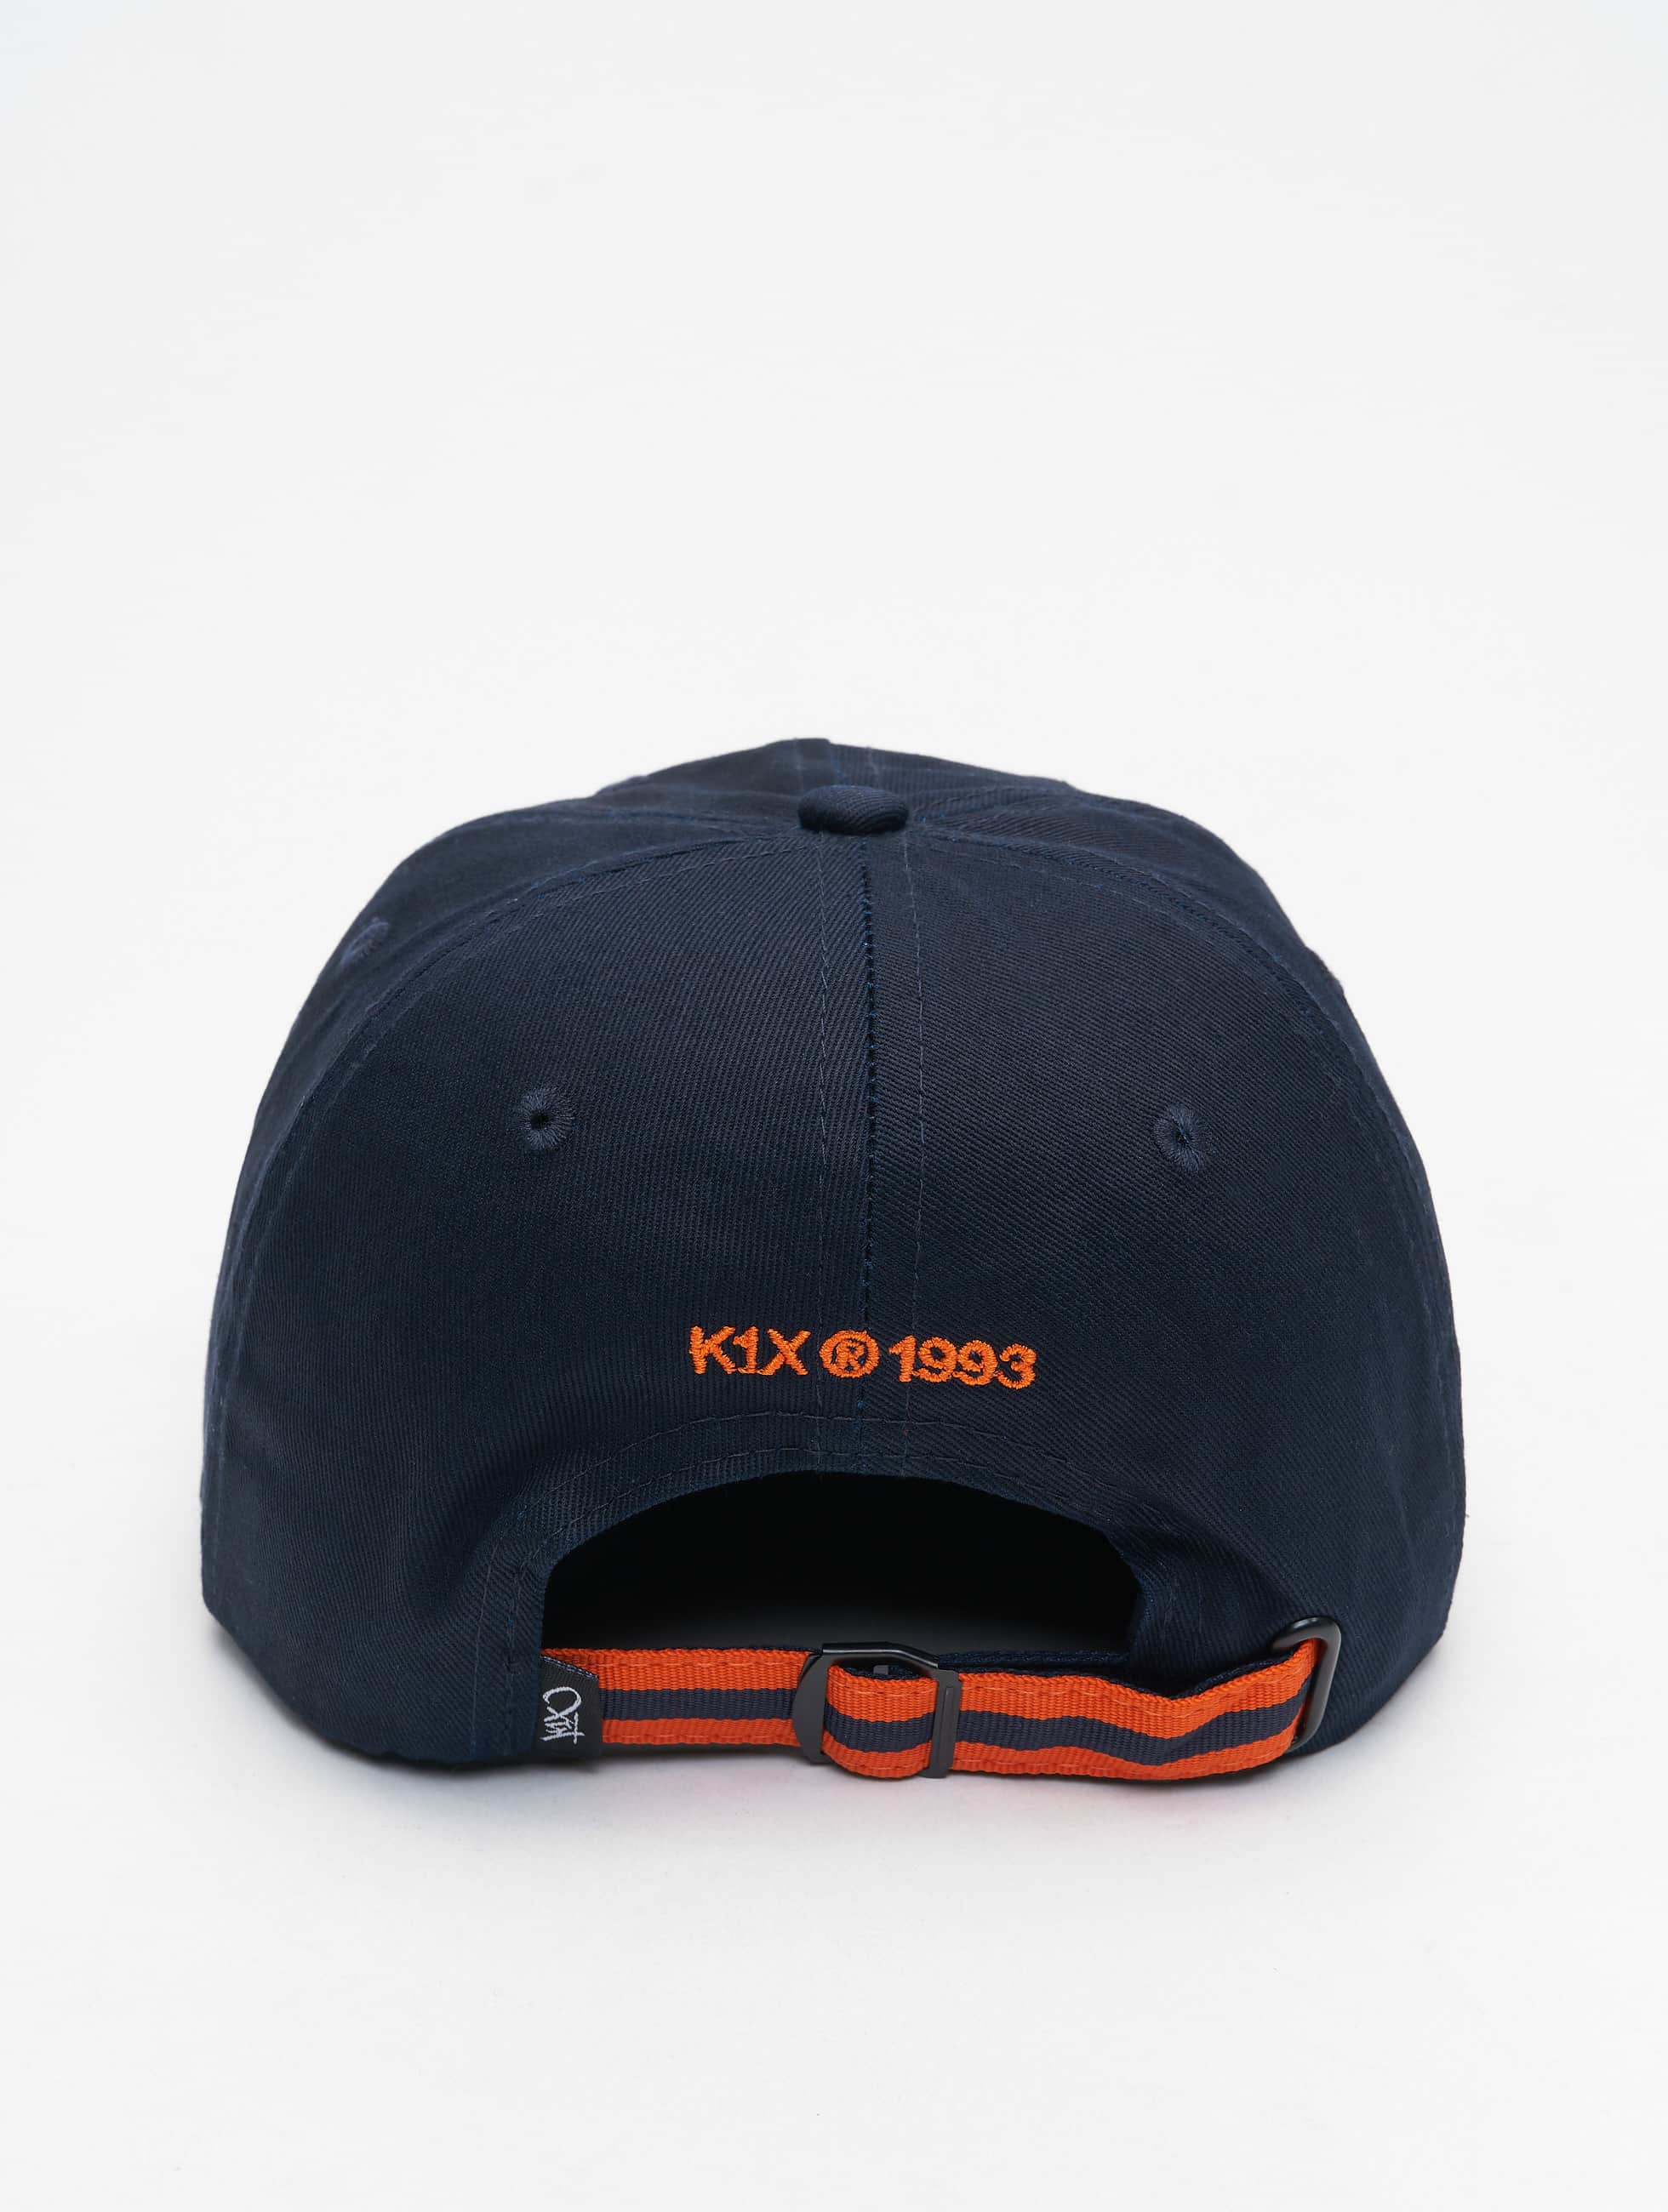 K1X Snapback Caps Play Hard Basketball Sports sininen